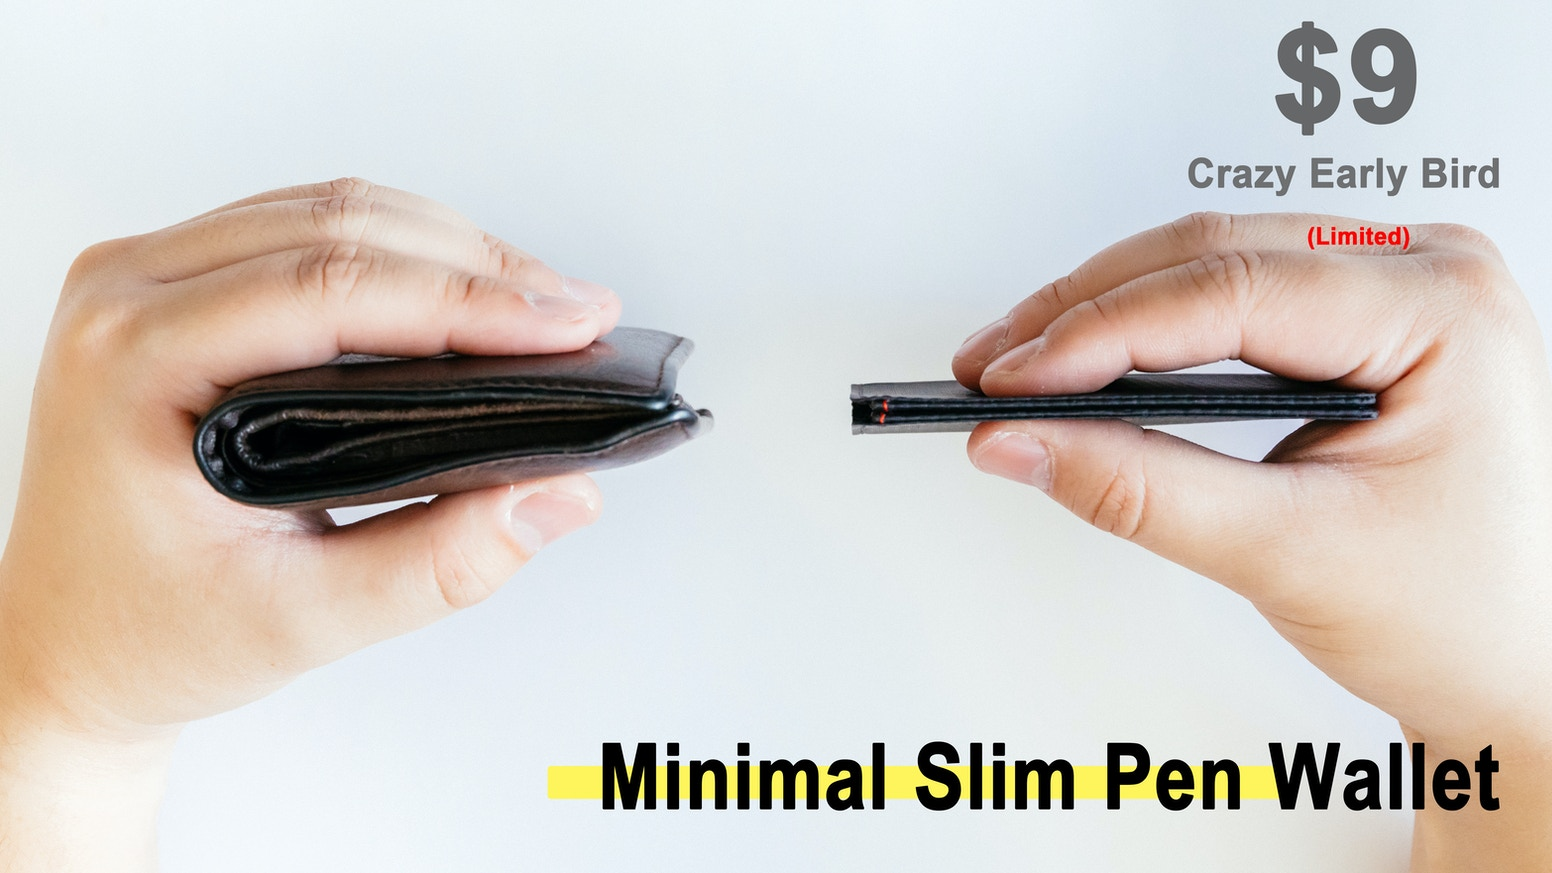 A Sharp and minimal Bi-fold wallet with a pen slot, a smart-casual EDC wallet and card holder